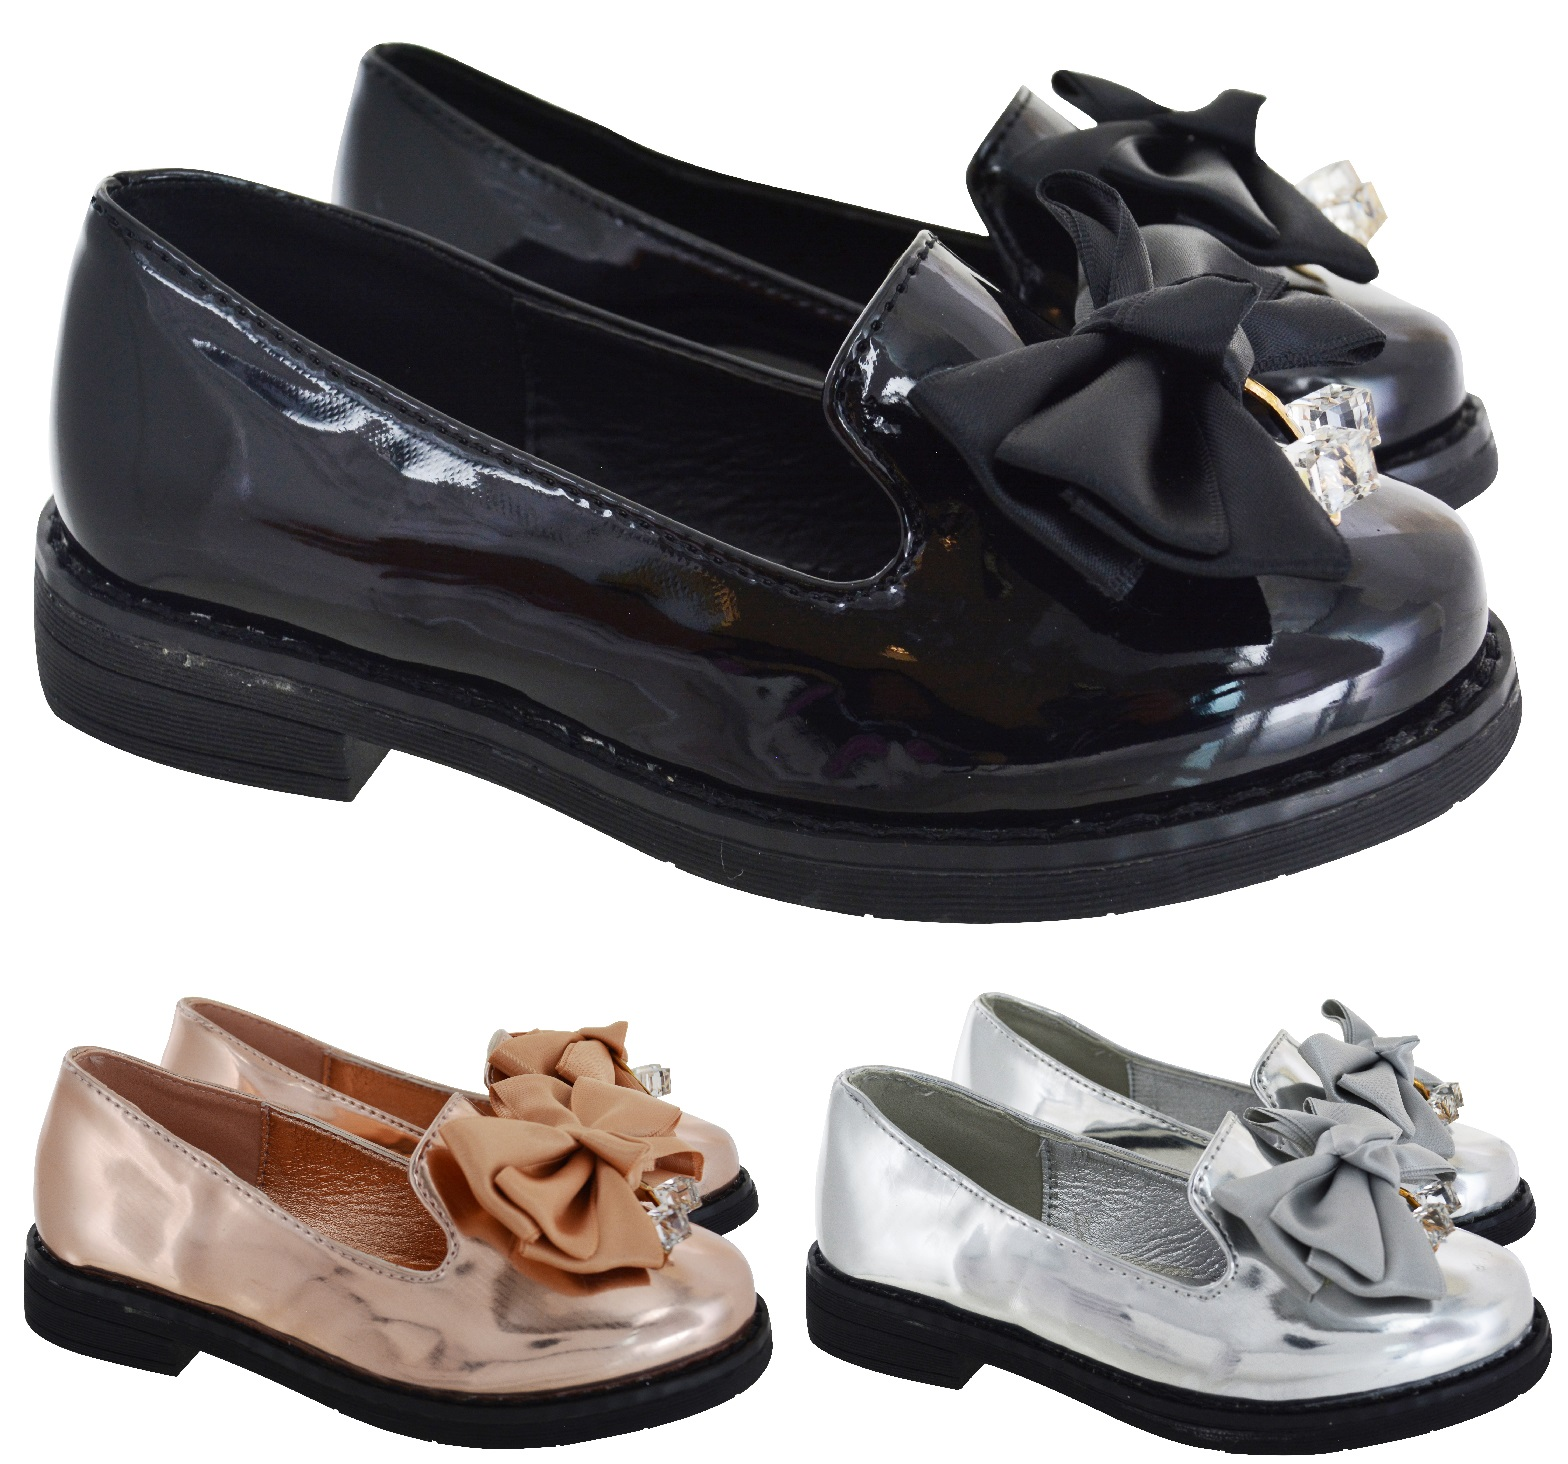 GIRLS SCHOOL SMART FLAT LOAFERS PATENT DOLLY PUMPS KIDS CHILDRENS COMFY SHOES SZ